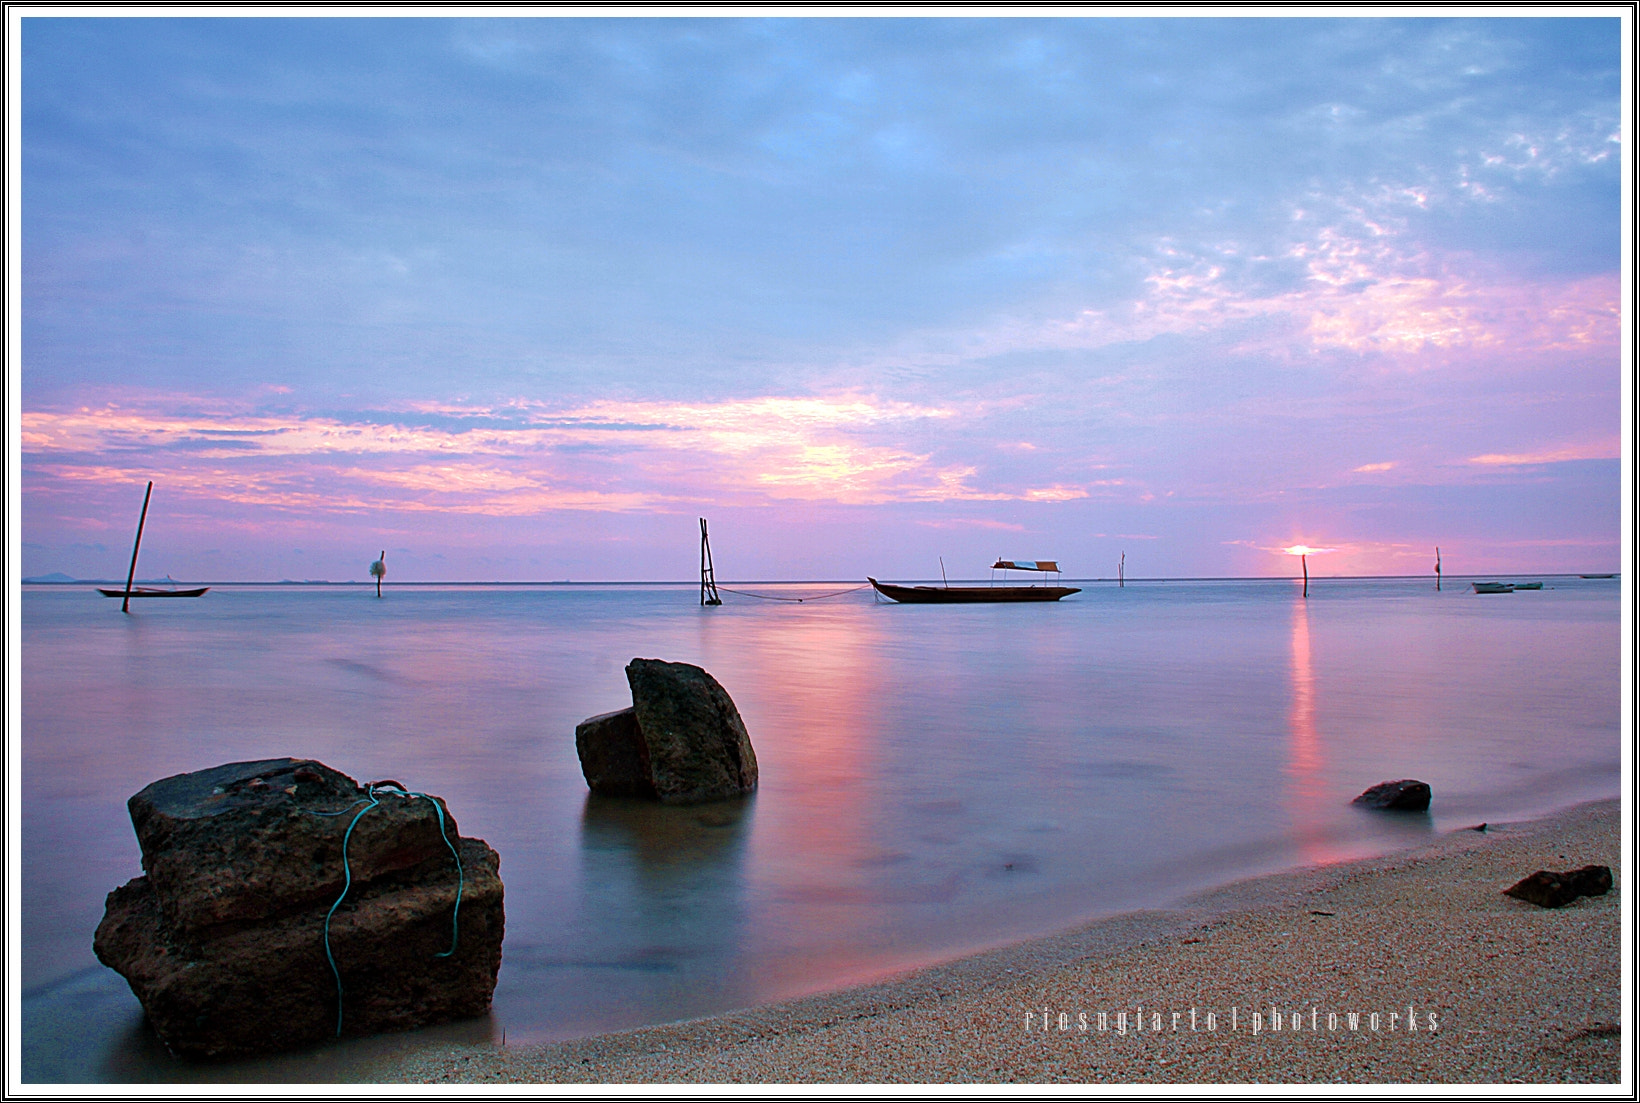 Photograph #jauh terparkir... by riosugiarto on 500px